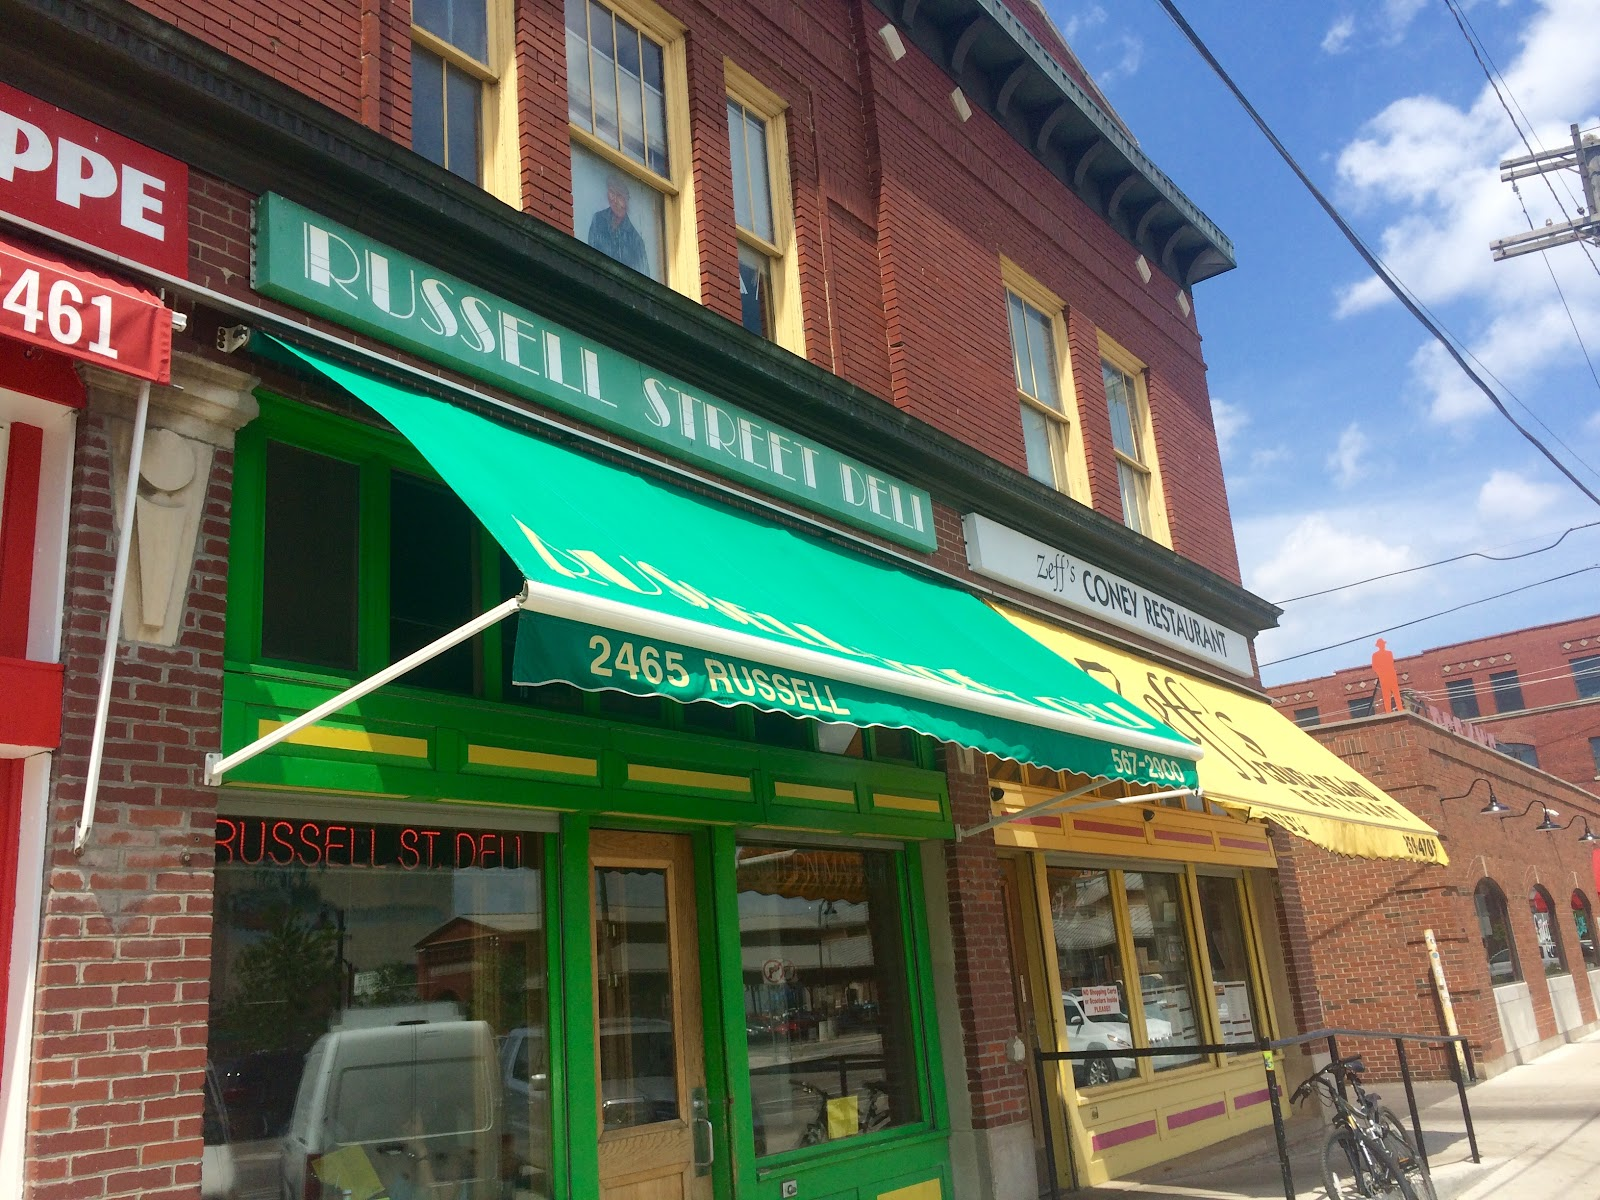 Open for breakfast and lunch, Russell Street Deli is a great place to stop any day of the week in Eastern Market